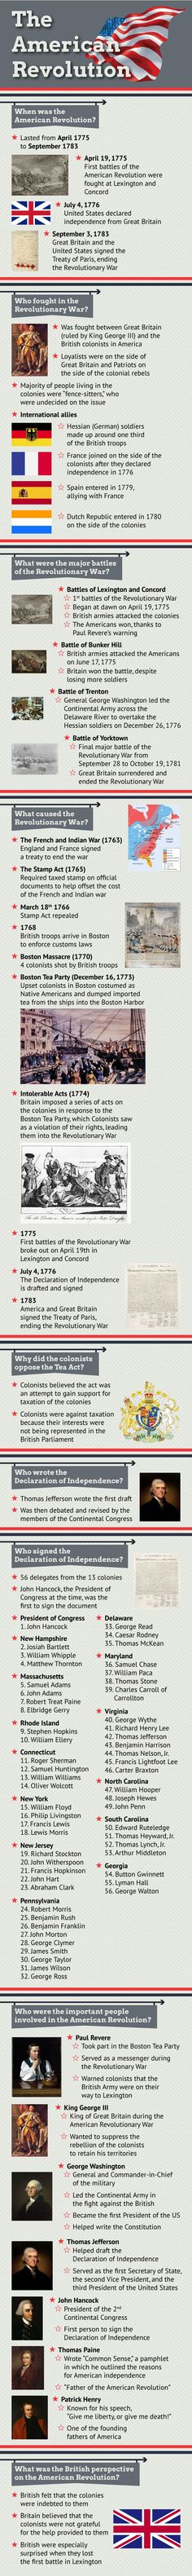 Revolutionary War Basic Facts: when was it? who was involved? where was it? what was it? why did it happen?